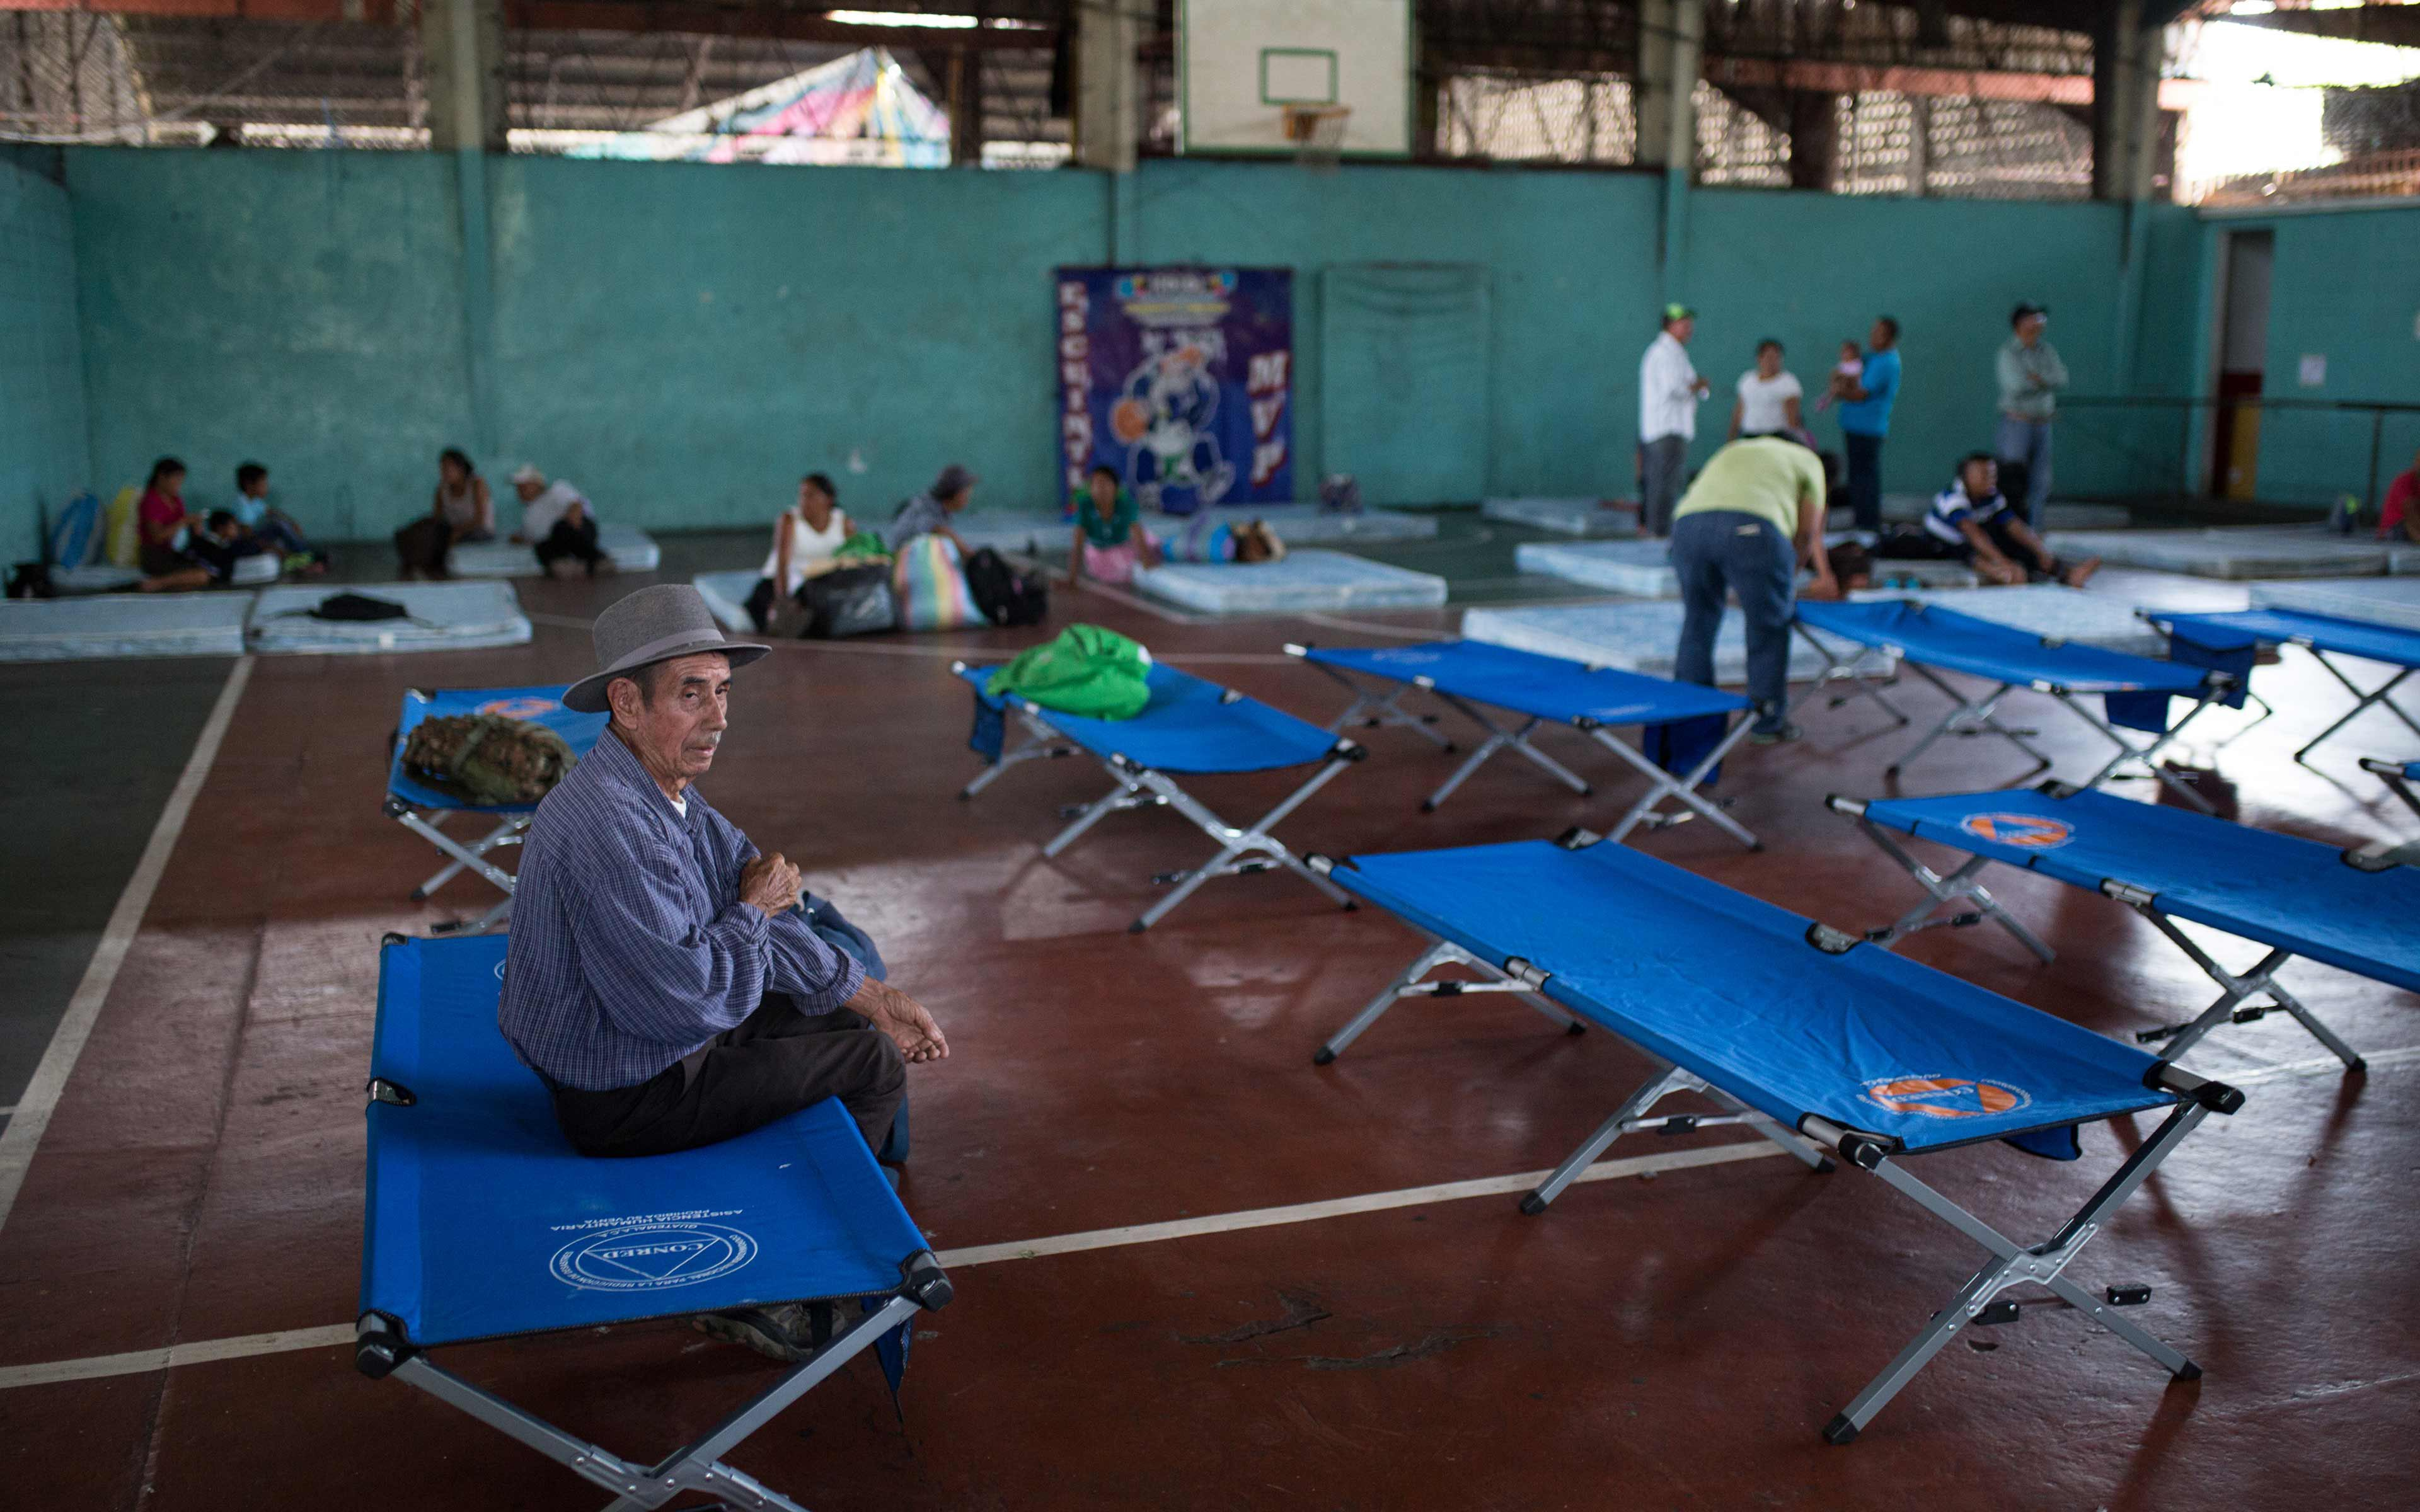 Gervasio López, 83, was assigned this cot in a temporary shelter at the gymnasium in Escuintla. He survived the war, nearly two decades as a refugee in Mexico, and then worked to build a new community in La Trinidad.